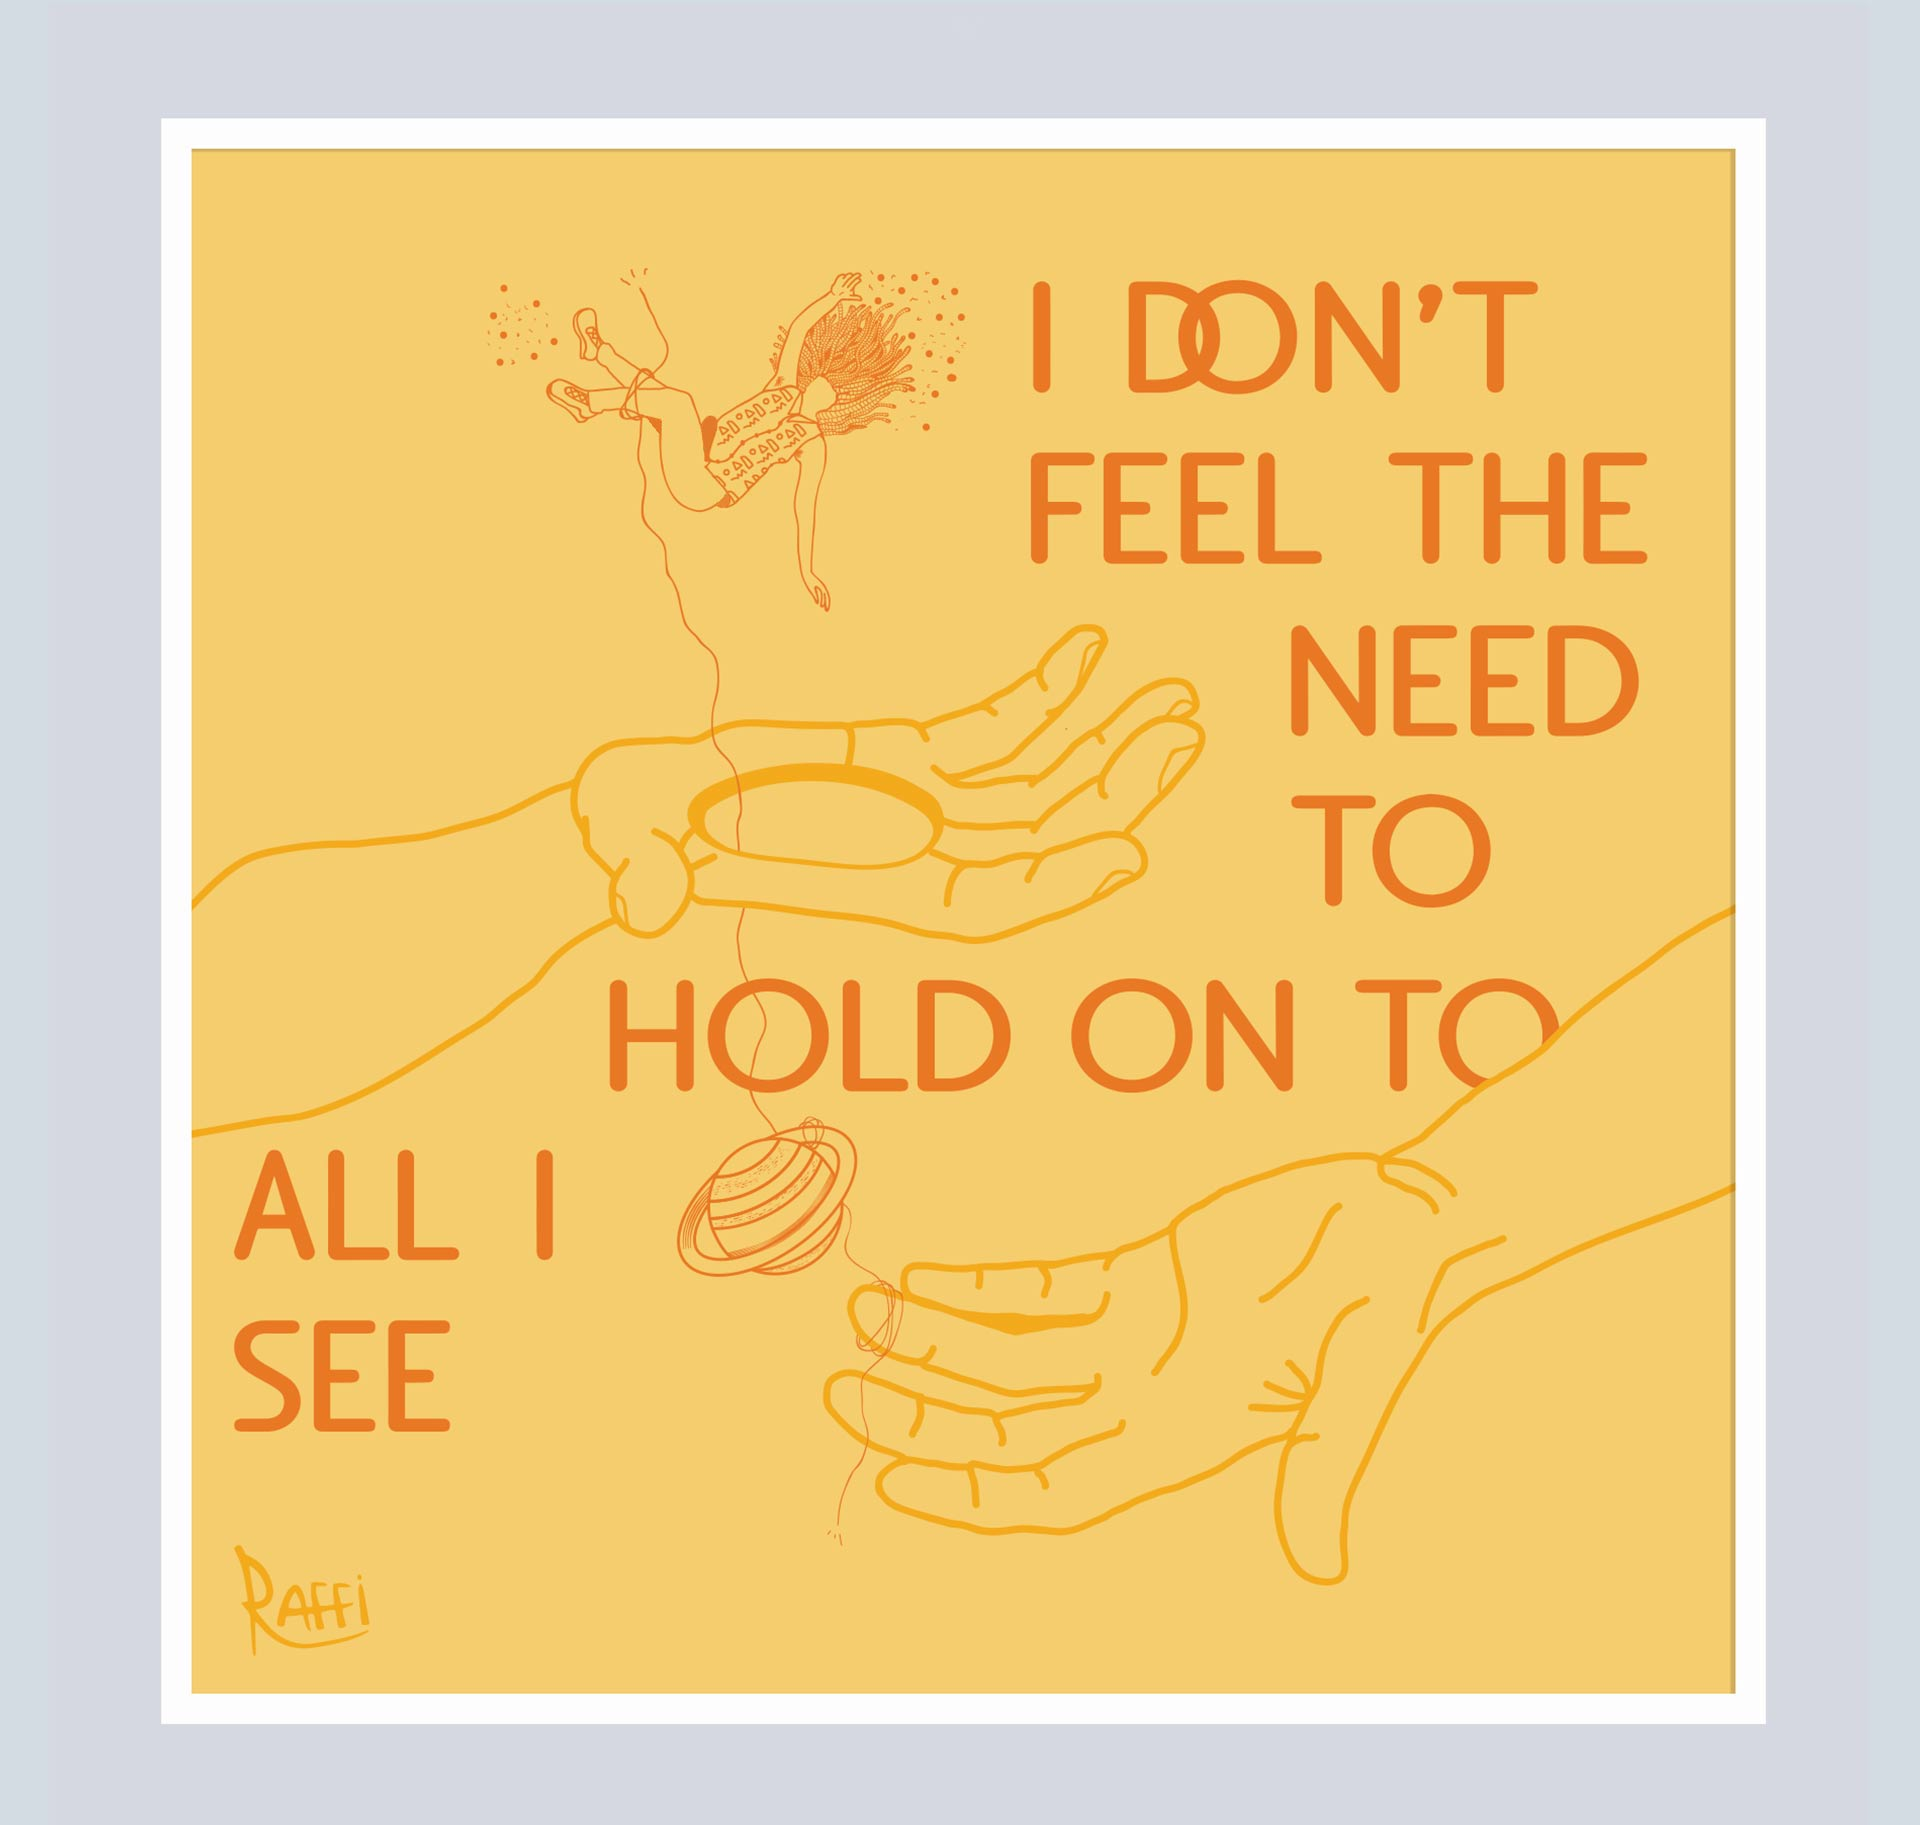 I Don't Feel The Need to Hold on to all I See illustration. There's a person with dreads falling onto a hand with a hole. The is a string unraveling onto a planet and another hand without a hole.